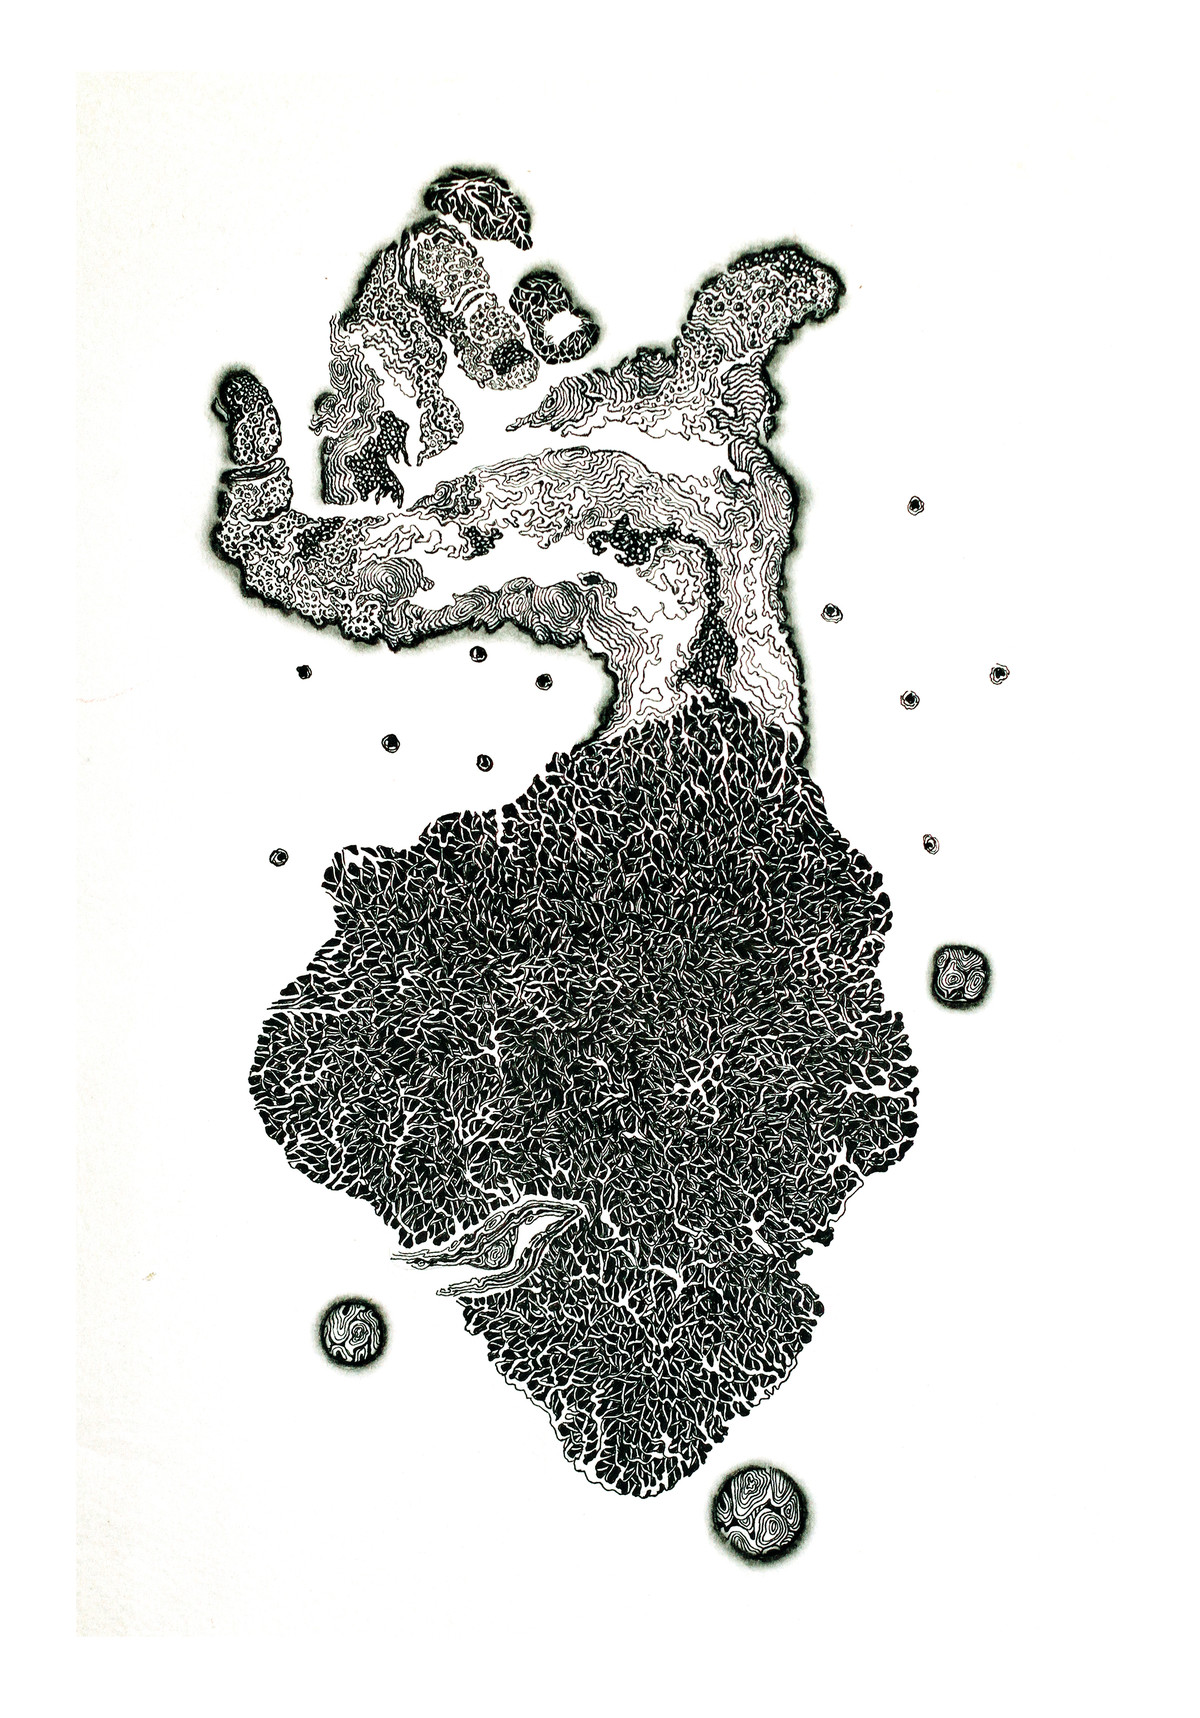 Solace- Union 5 by Tanushree Roy Paul, Illustration Drawing, Ink on Paper, White color